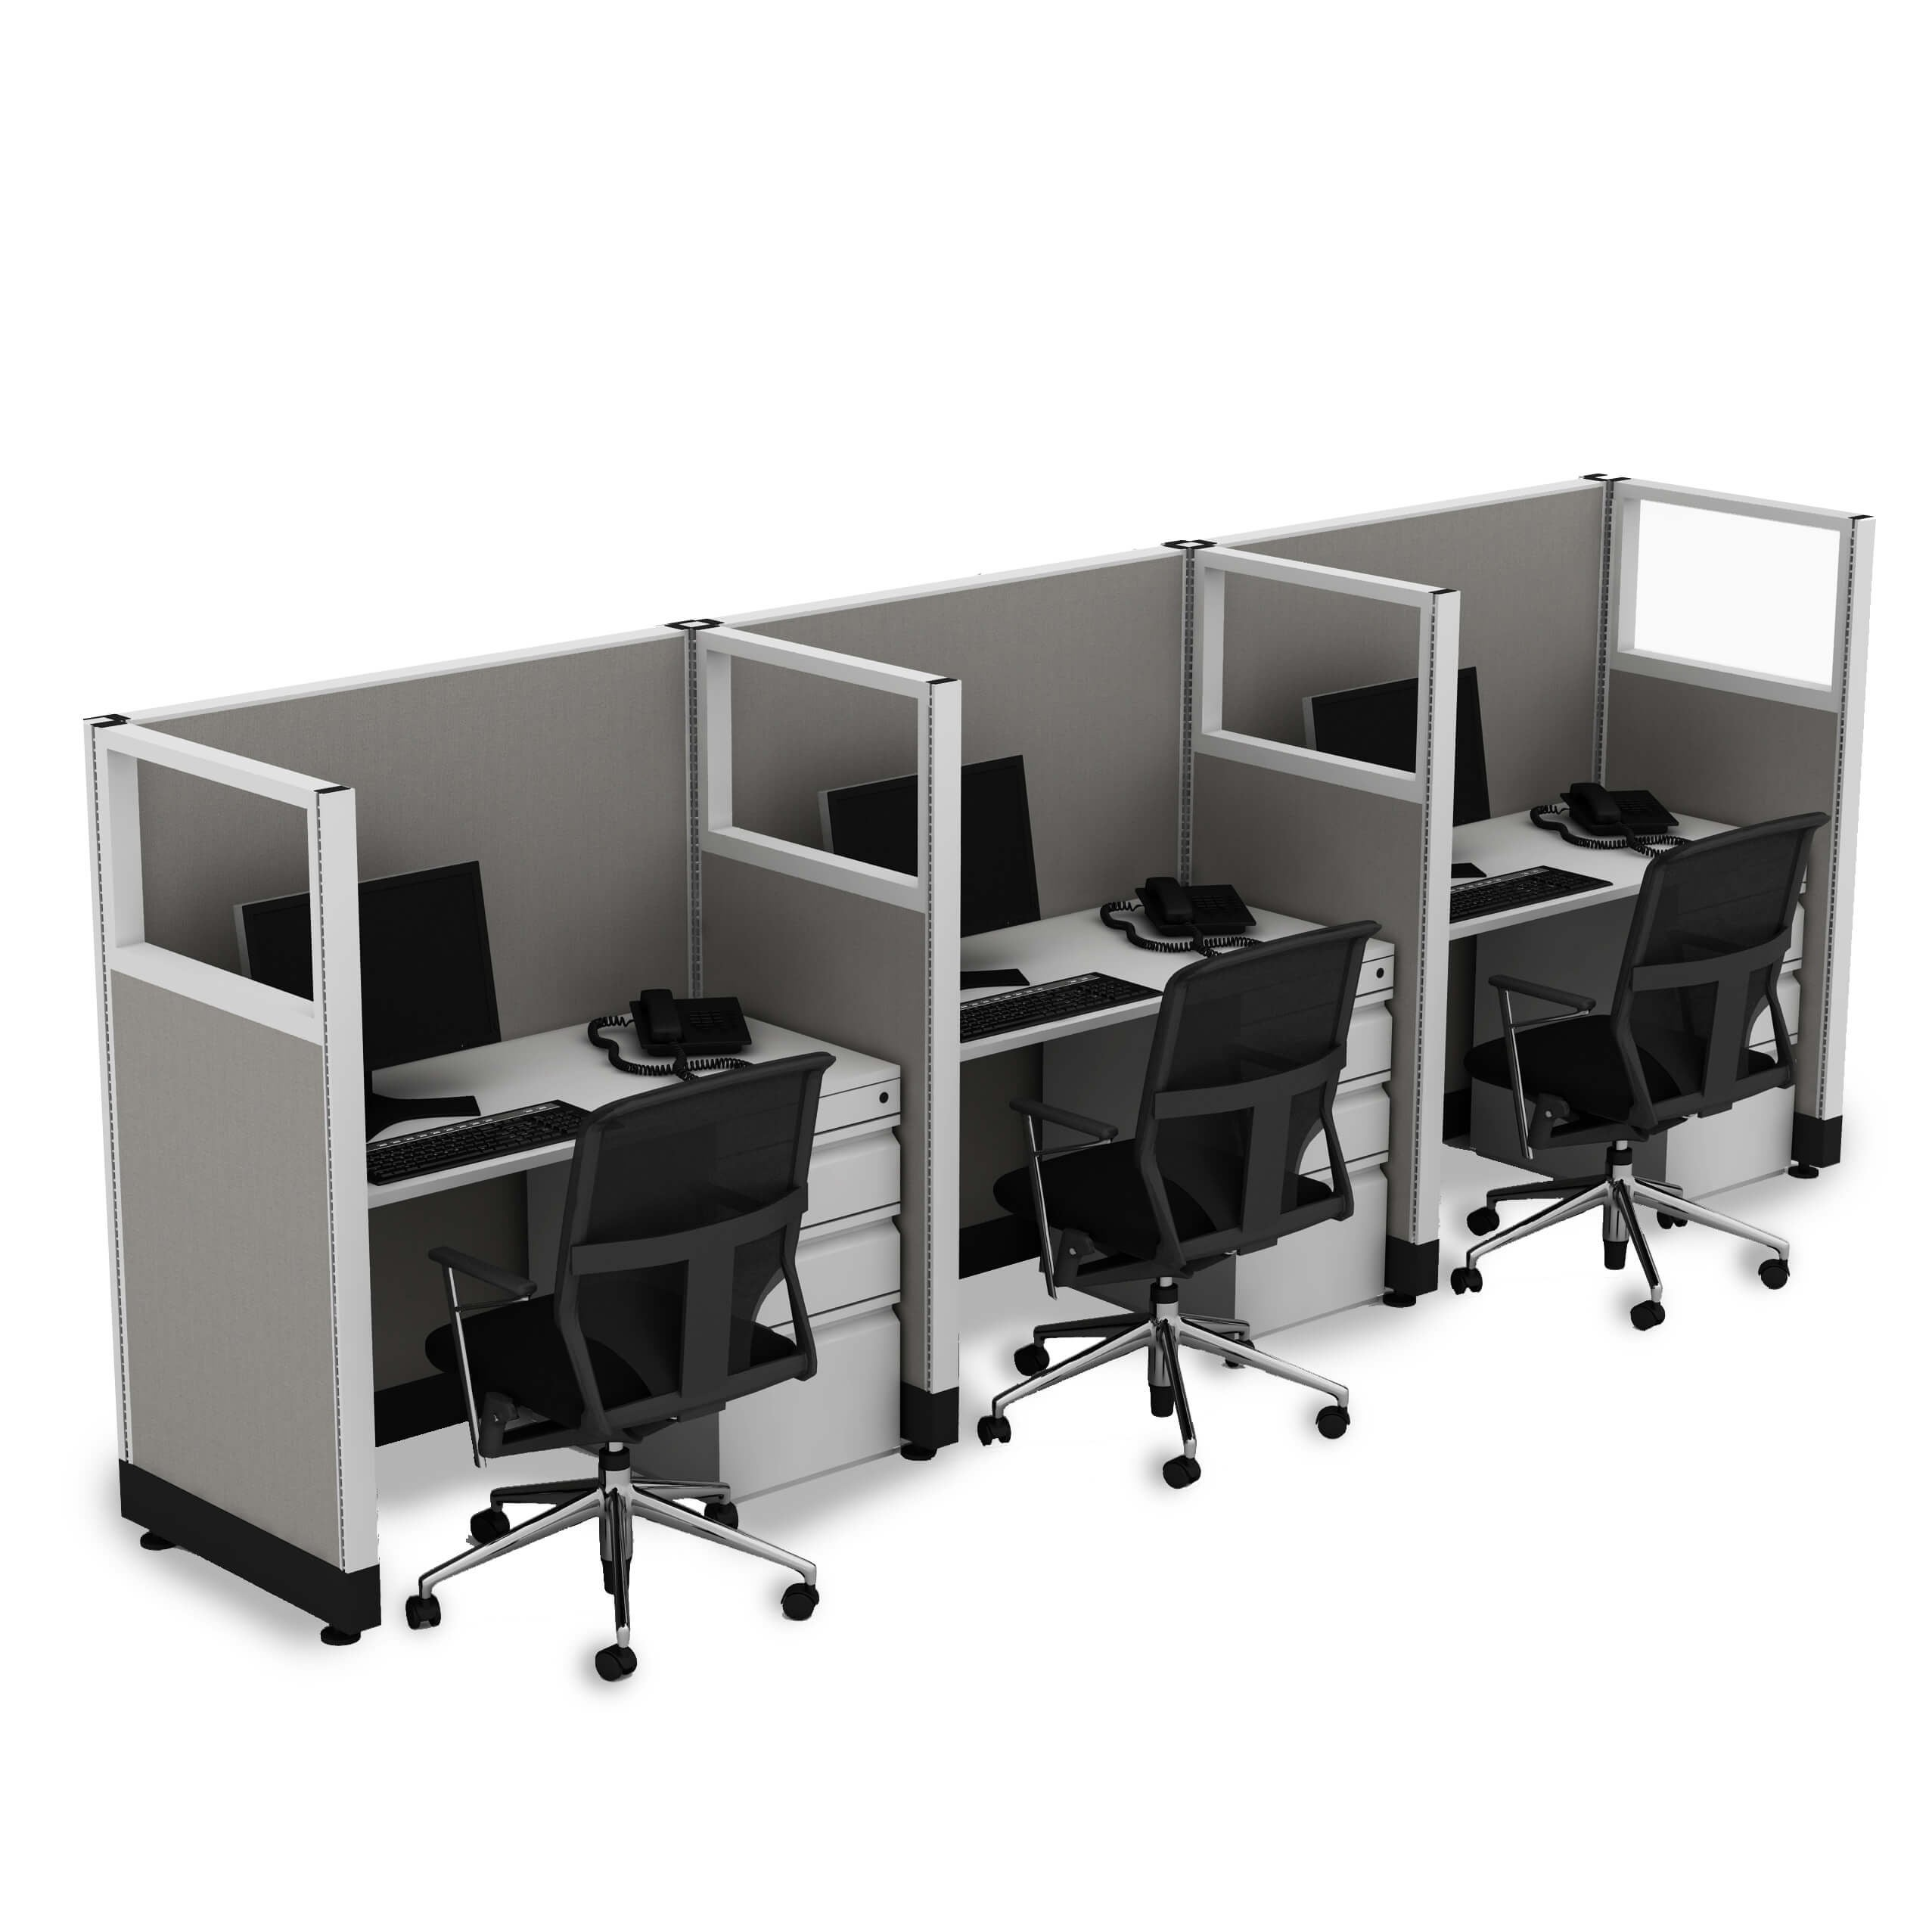 Cubicle Workstations 53H 3pack Inline Powered (3x4 - Walnut Desk White Paint - Assembly Required)